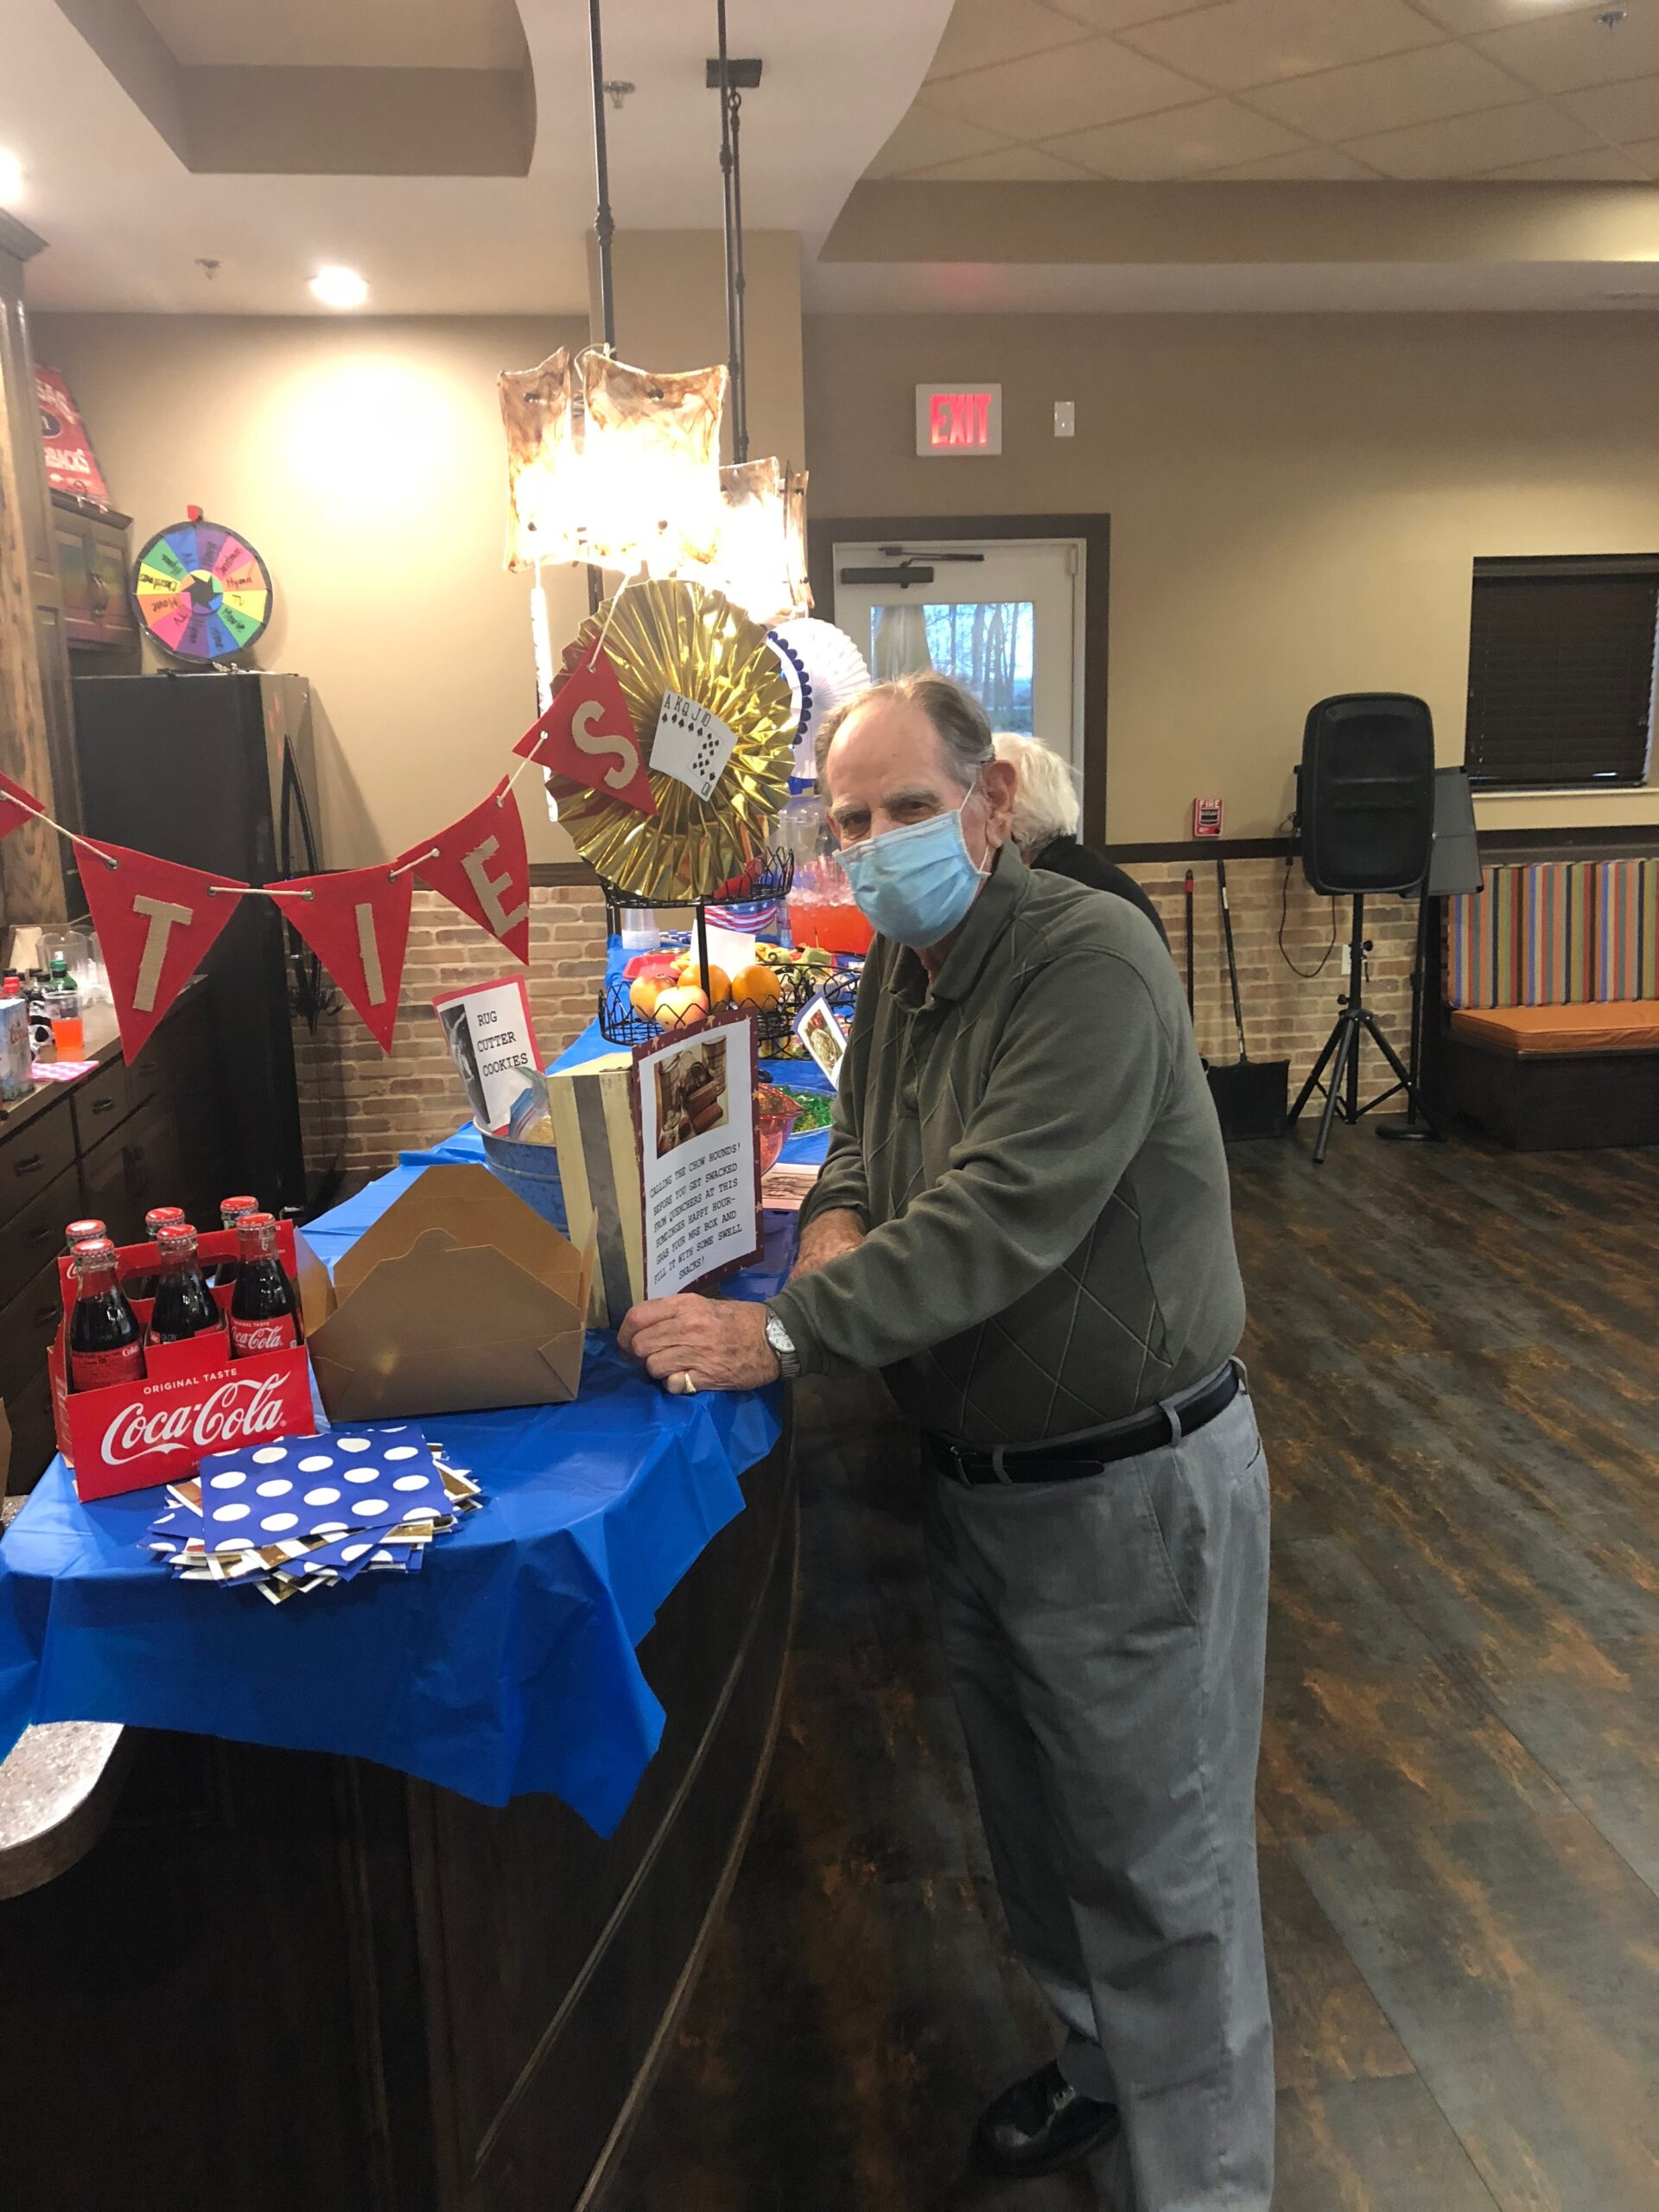 1940s Themed Happy Hour- On Thursday residents enjoyed a 1940s themed Happy Hour with Reminiscing Posters, Swing Band Music, and they each got to fill up their Military MRE boxes with themed snacks and 1940s sweets!